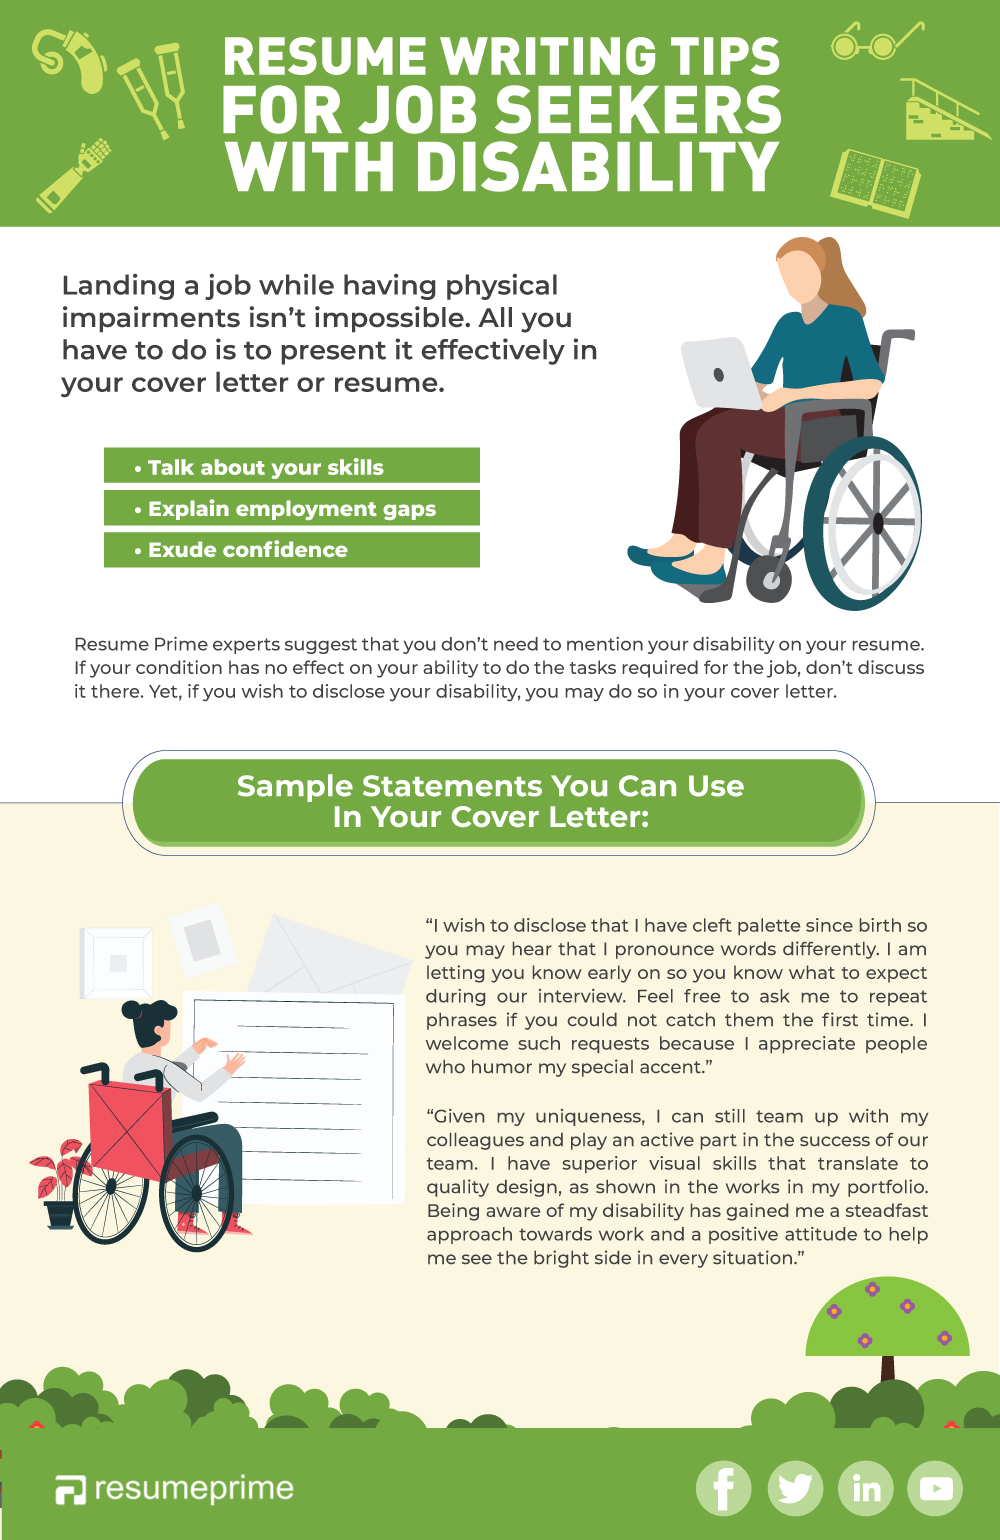 Tips on how to mention disability in resume